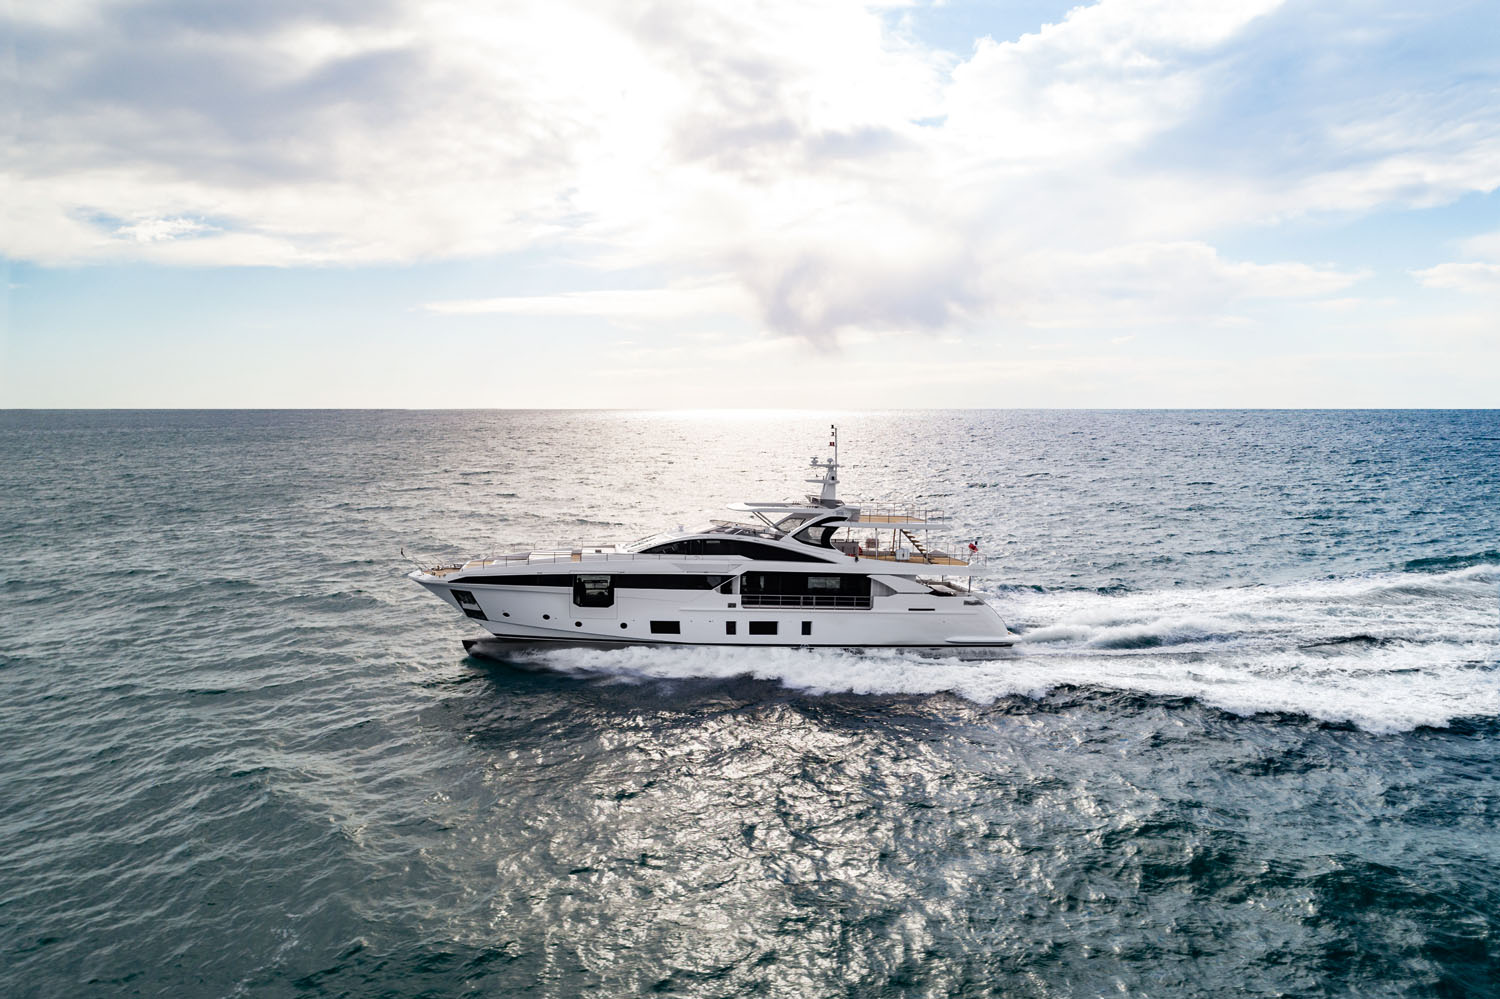 Azimut wins another 'Best of the Best' from Robb Report this year